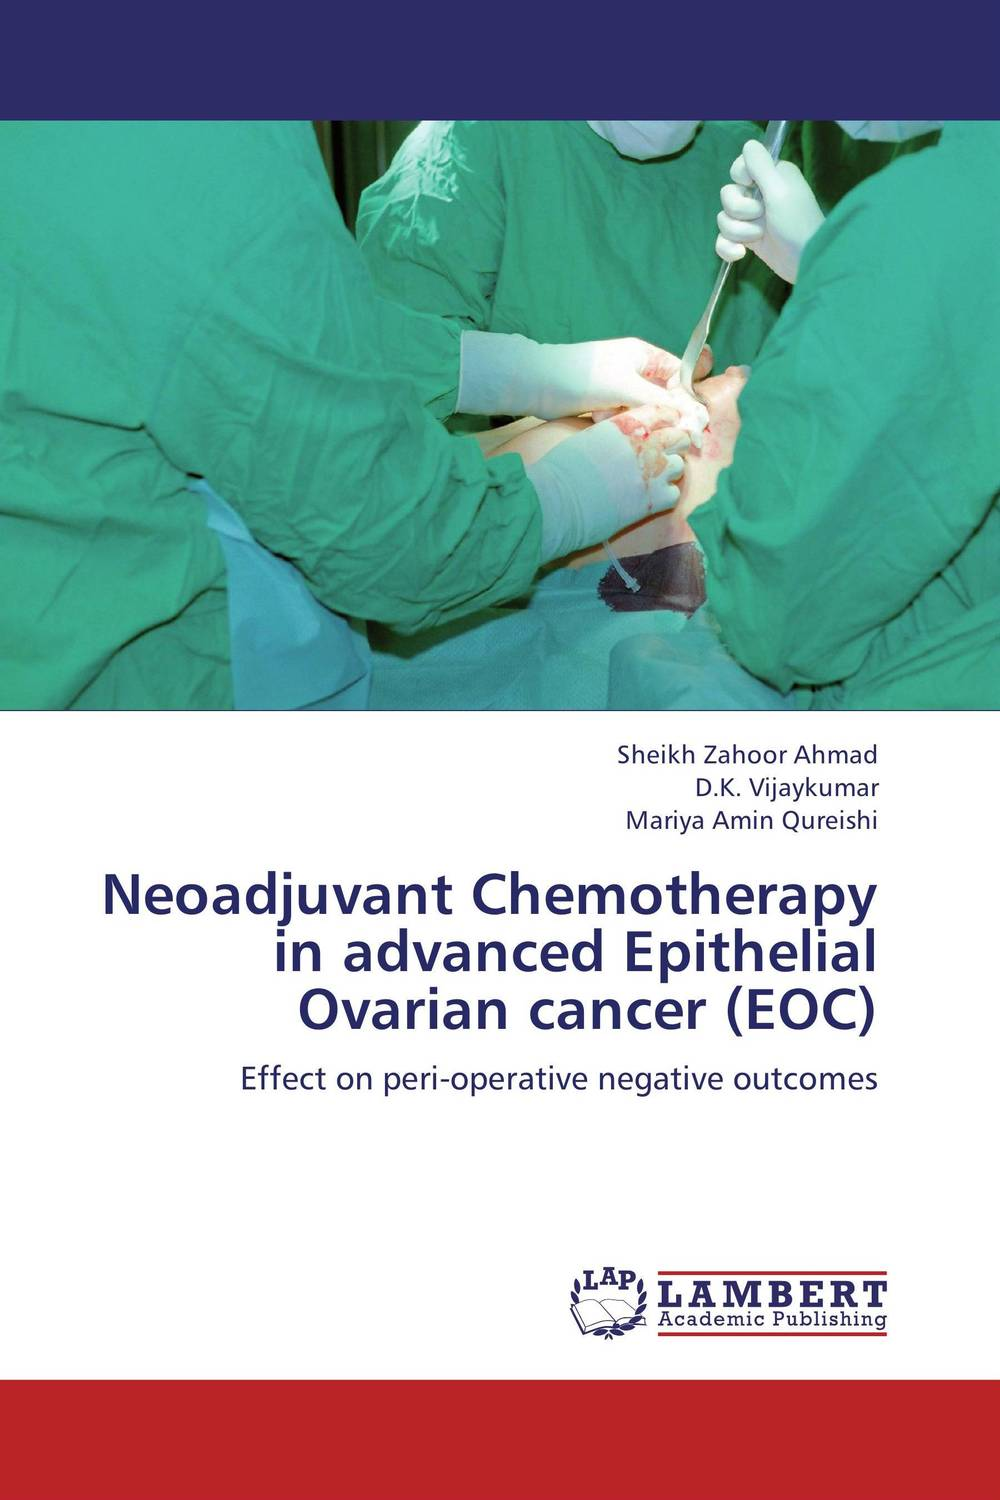 Neoadjuvant Chemotherapy in advanced Epithelial Ovarian cancer (EOC) the operative